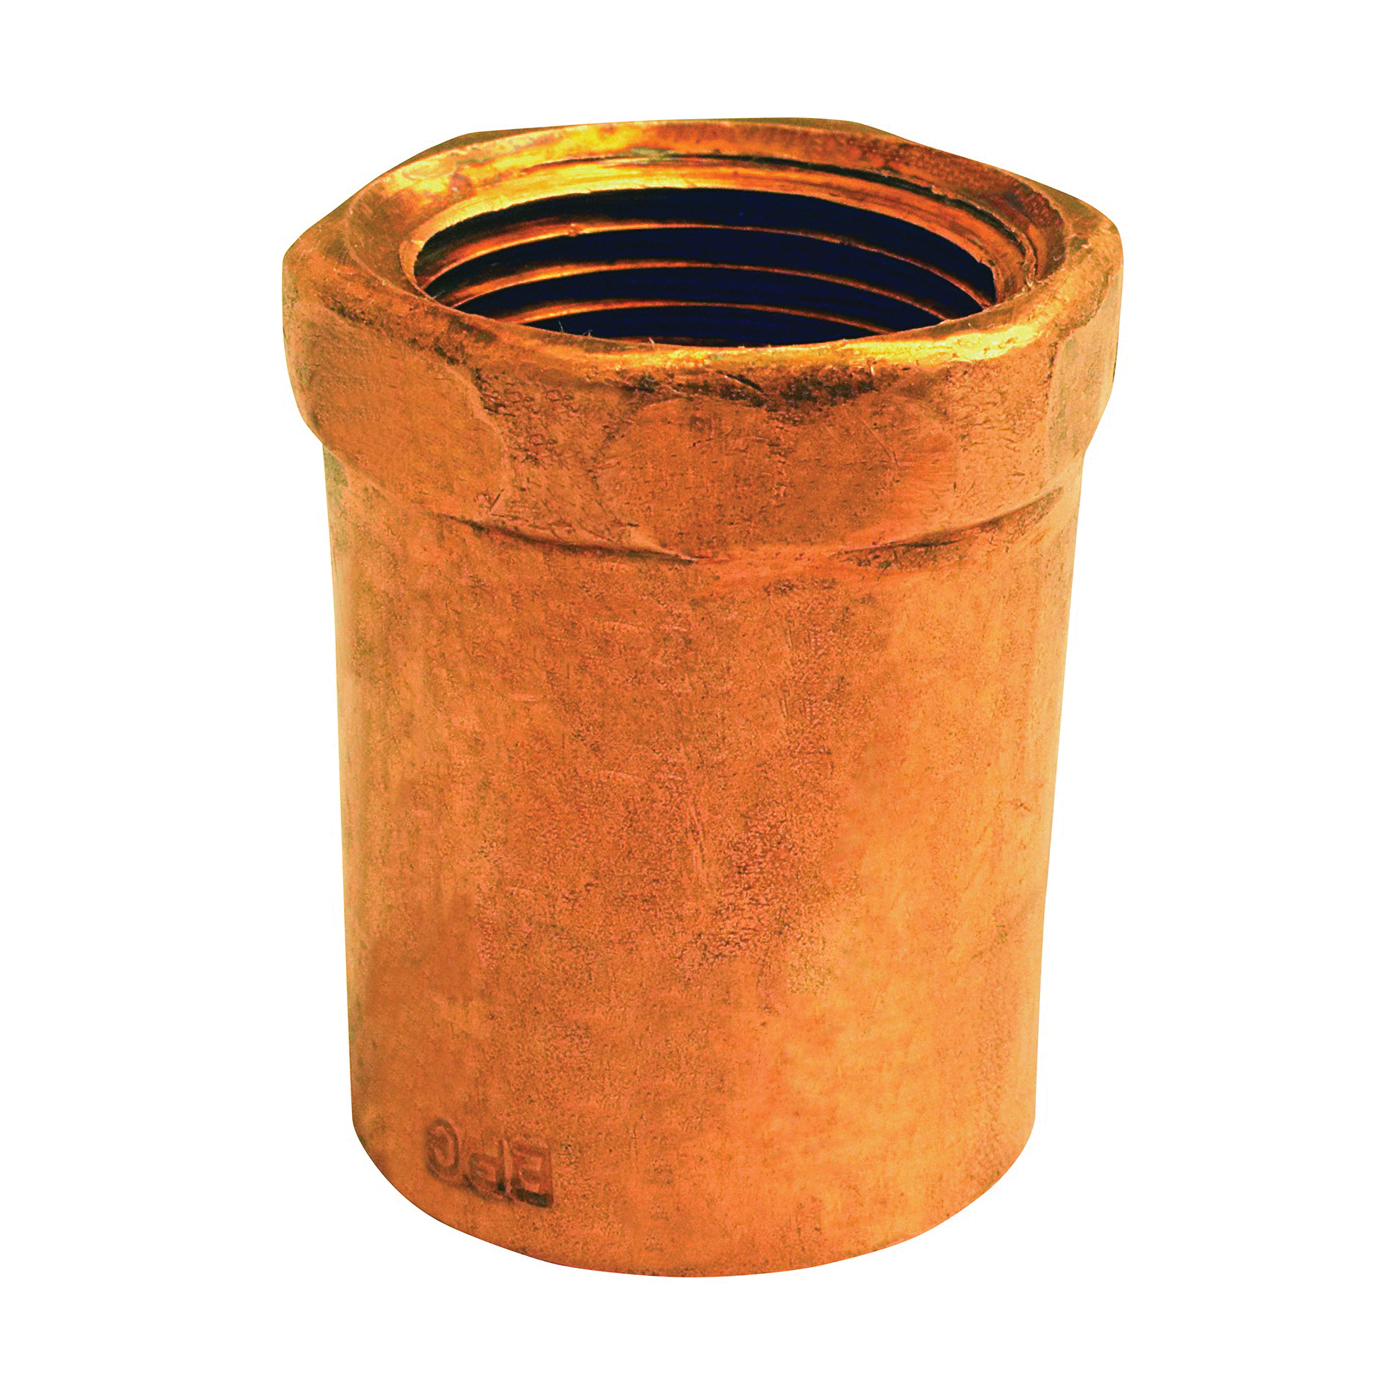 Picture of EPC 103R Series 30134 Reducing Adapter, 1/2 x 3/4 in, Sweat x FNPT, Copper